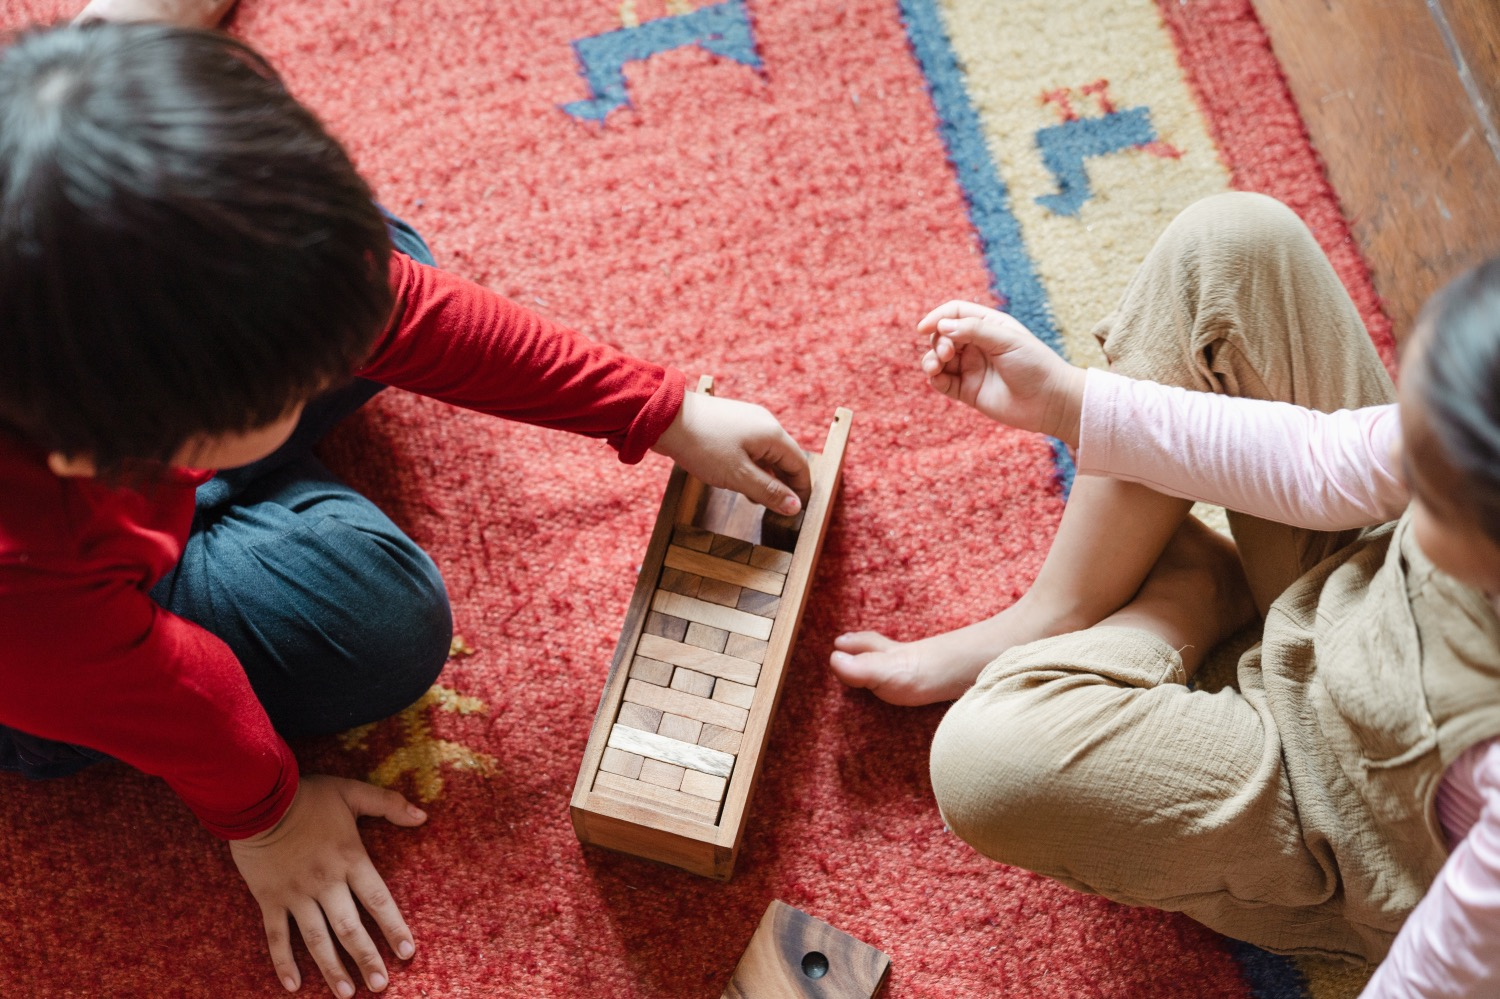 Children playing with blocks on carpet